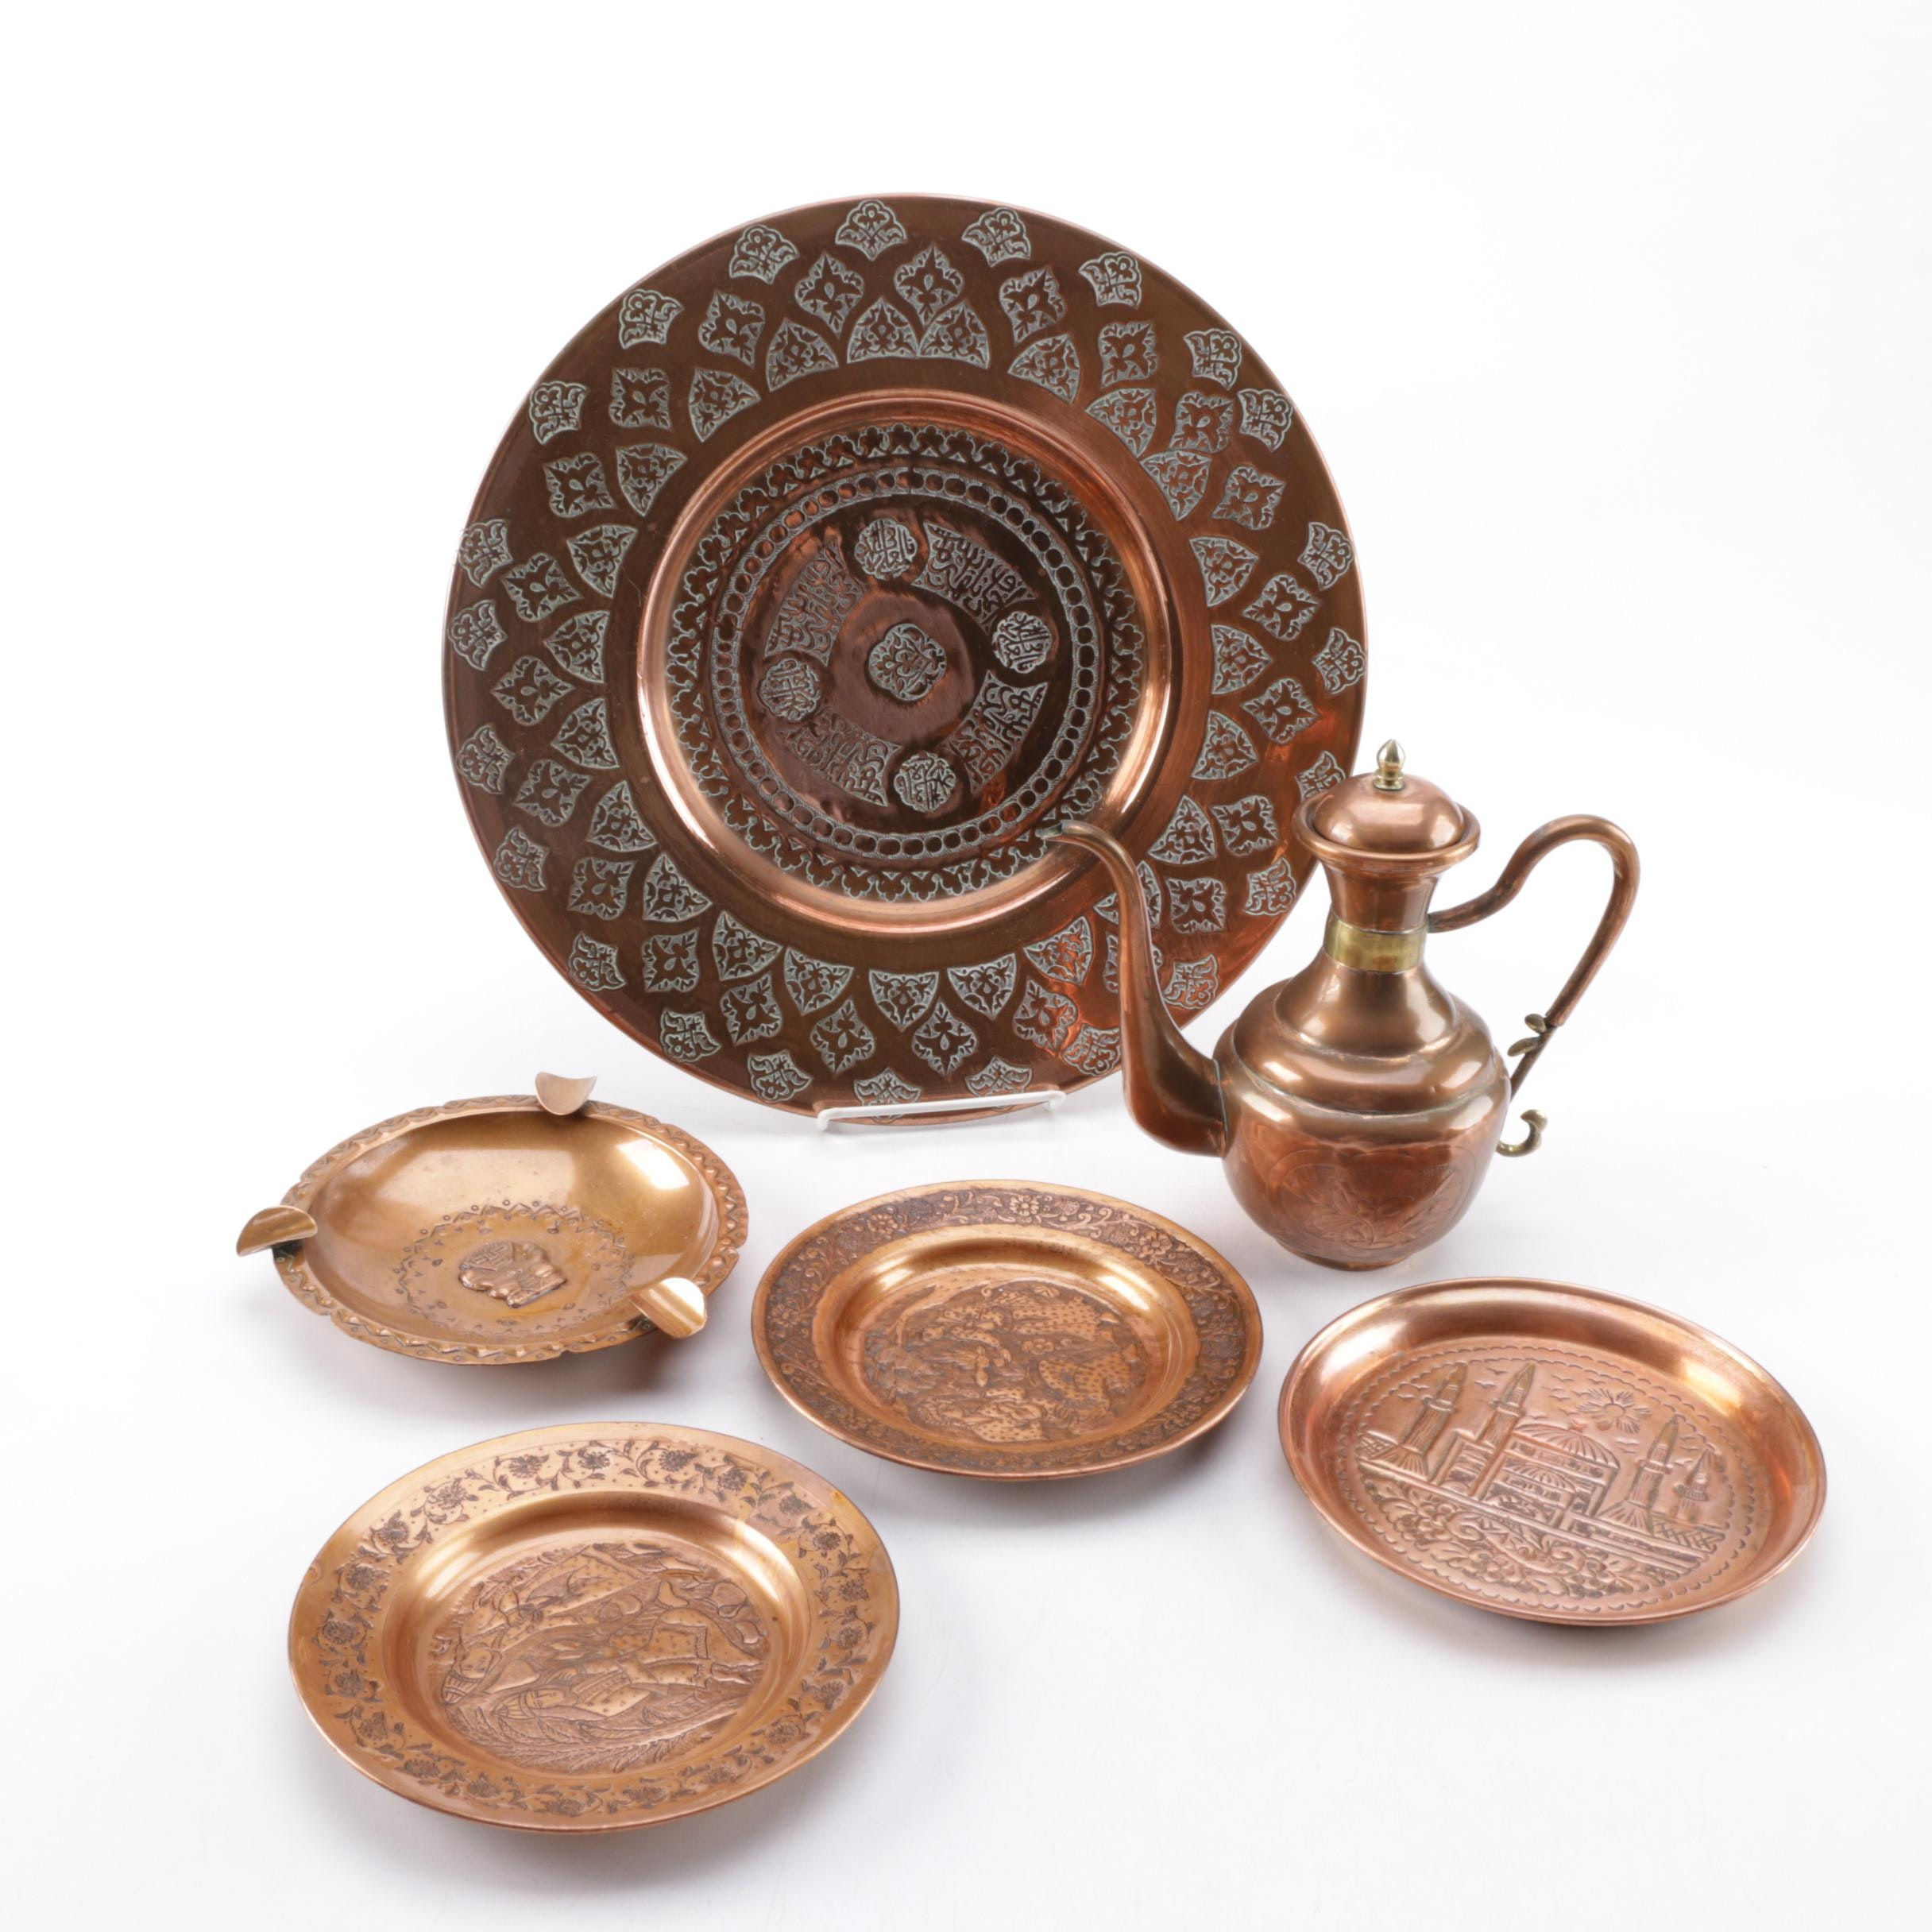 Collection of Decorative Copper Plates, Ashtray, and Ewer